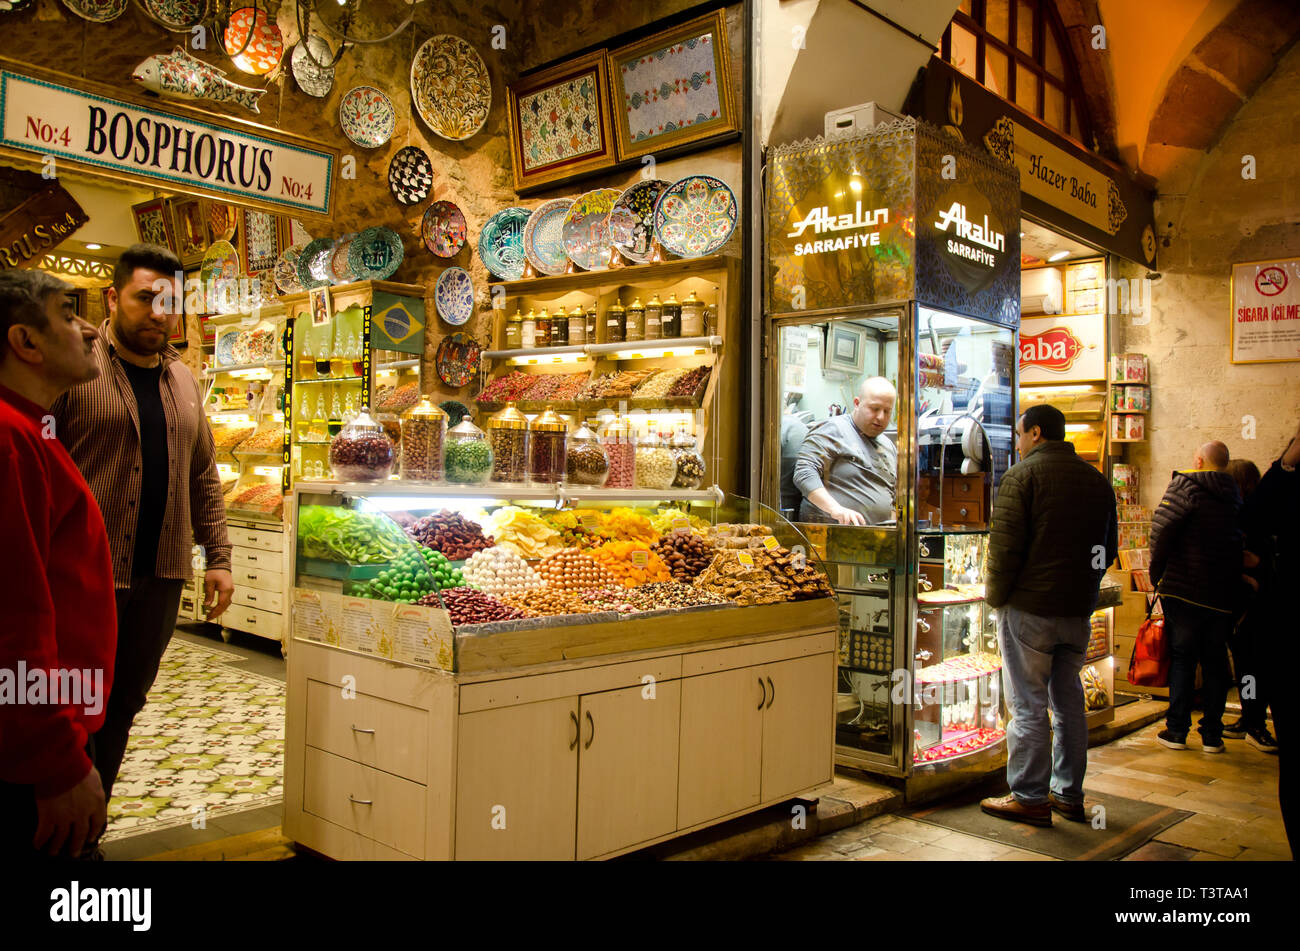 Istanbul, Turkey, March 07, 2019:market vendor standing in front of market store with various colorful sweets and souvenirs, inside of Egyptian Bazaar - Stock Image